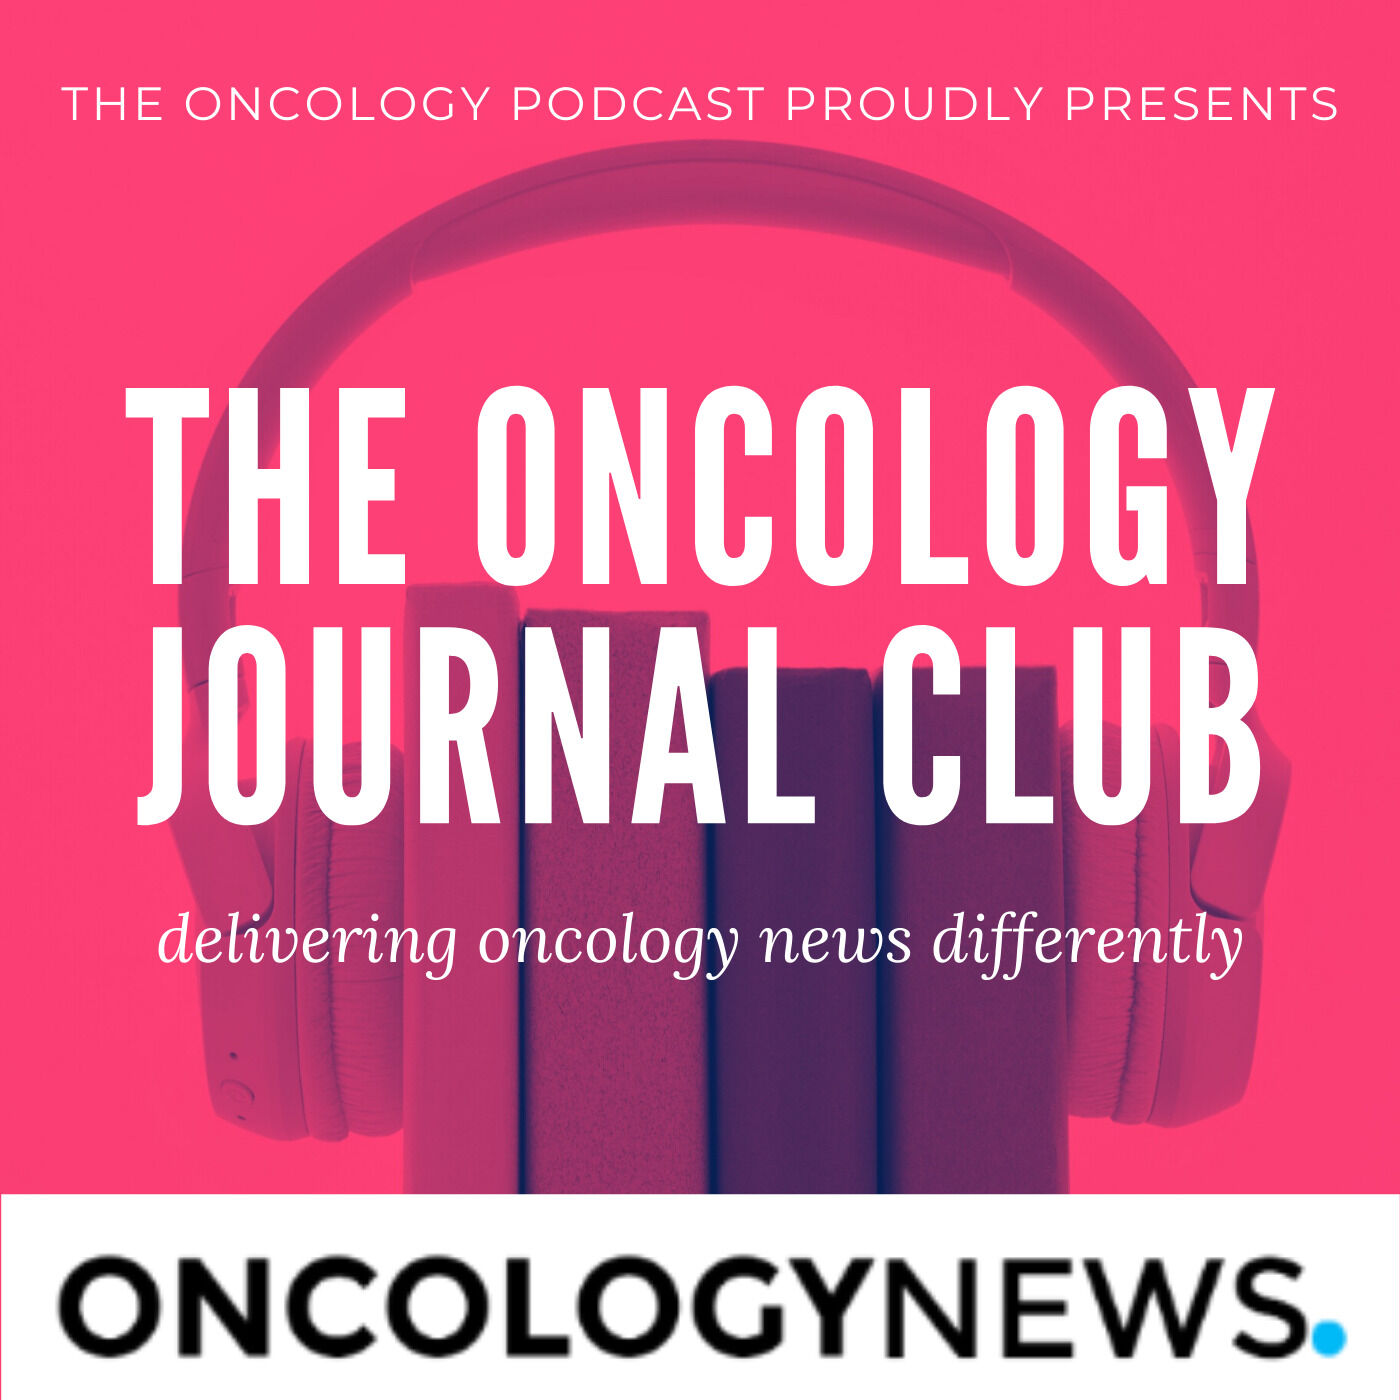 The Oncology Journal Club Episode 8: Employment Outcomes, Medicinal Cannabis, COVID-19 and IO, Extrachromosomal DNA, RAF Inhibitors plus Special Regional and Rural Update with Sabe Sabesan and Rob Zielinski